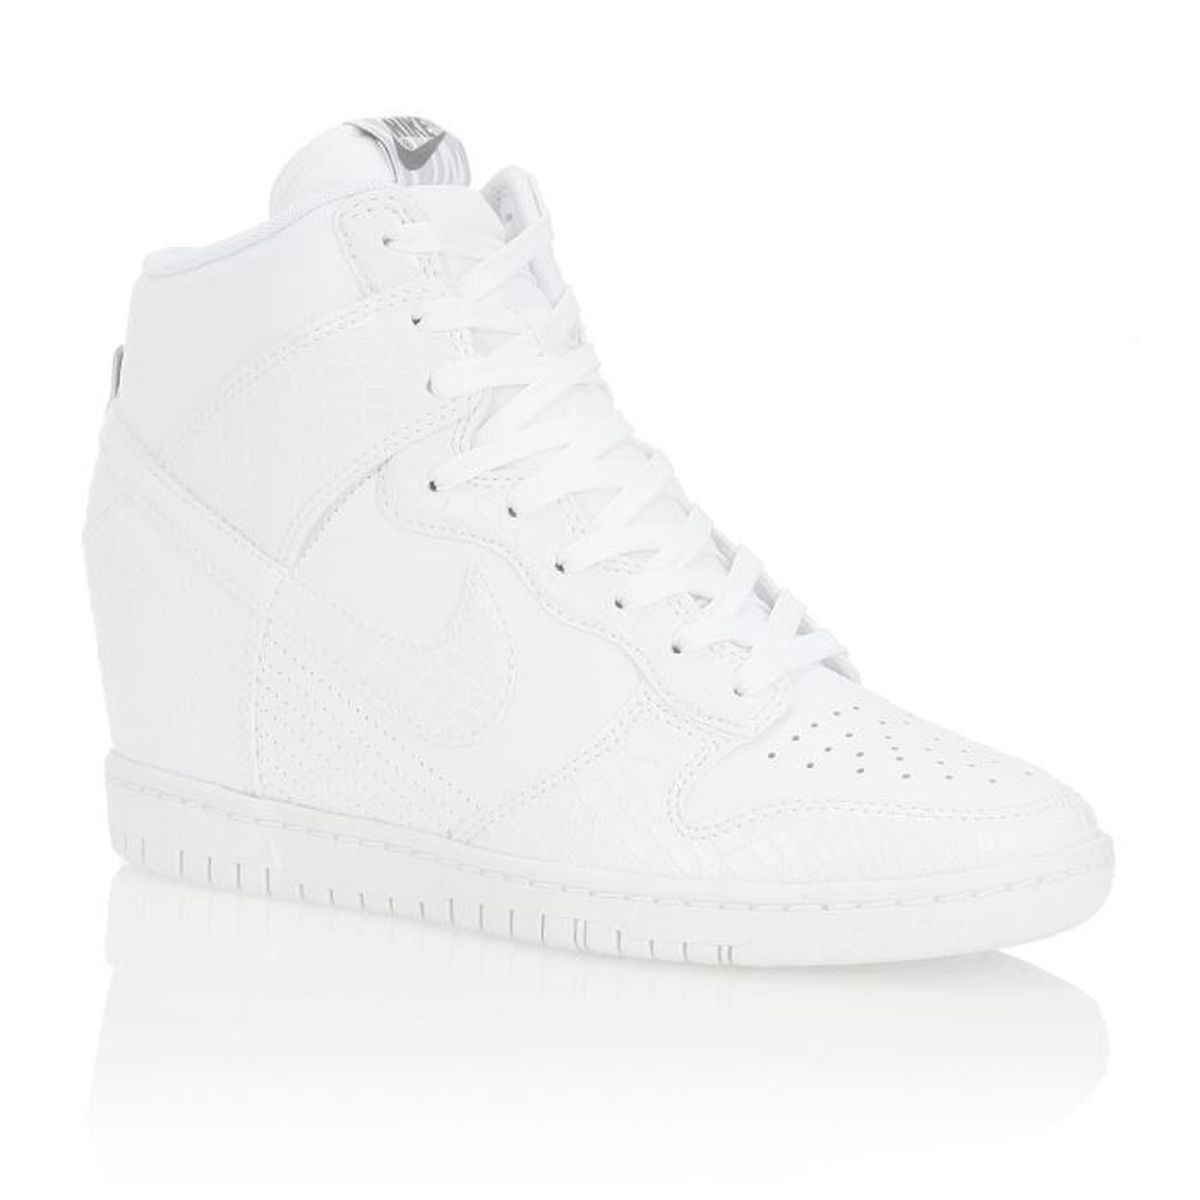 nike baskets dunk sky hi femme femme blanc achat vente nike baskets wmns dunk sky hi femme. Black Bedroom Furniture Sets. Home Design Ideas